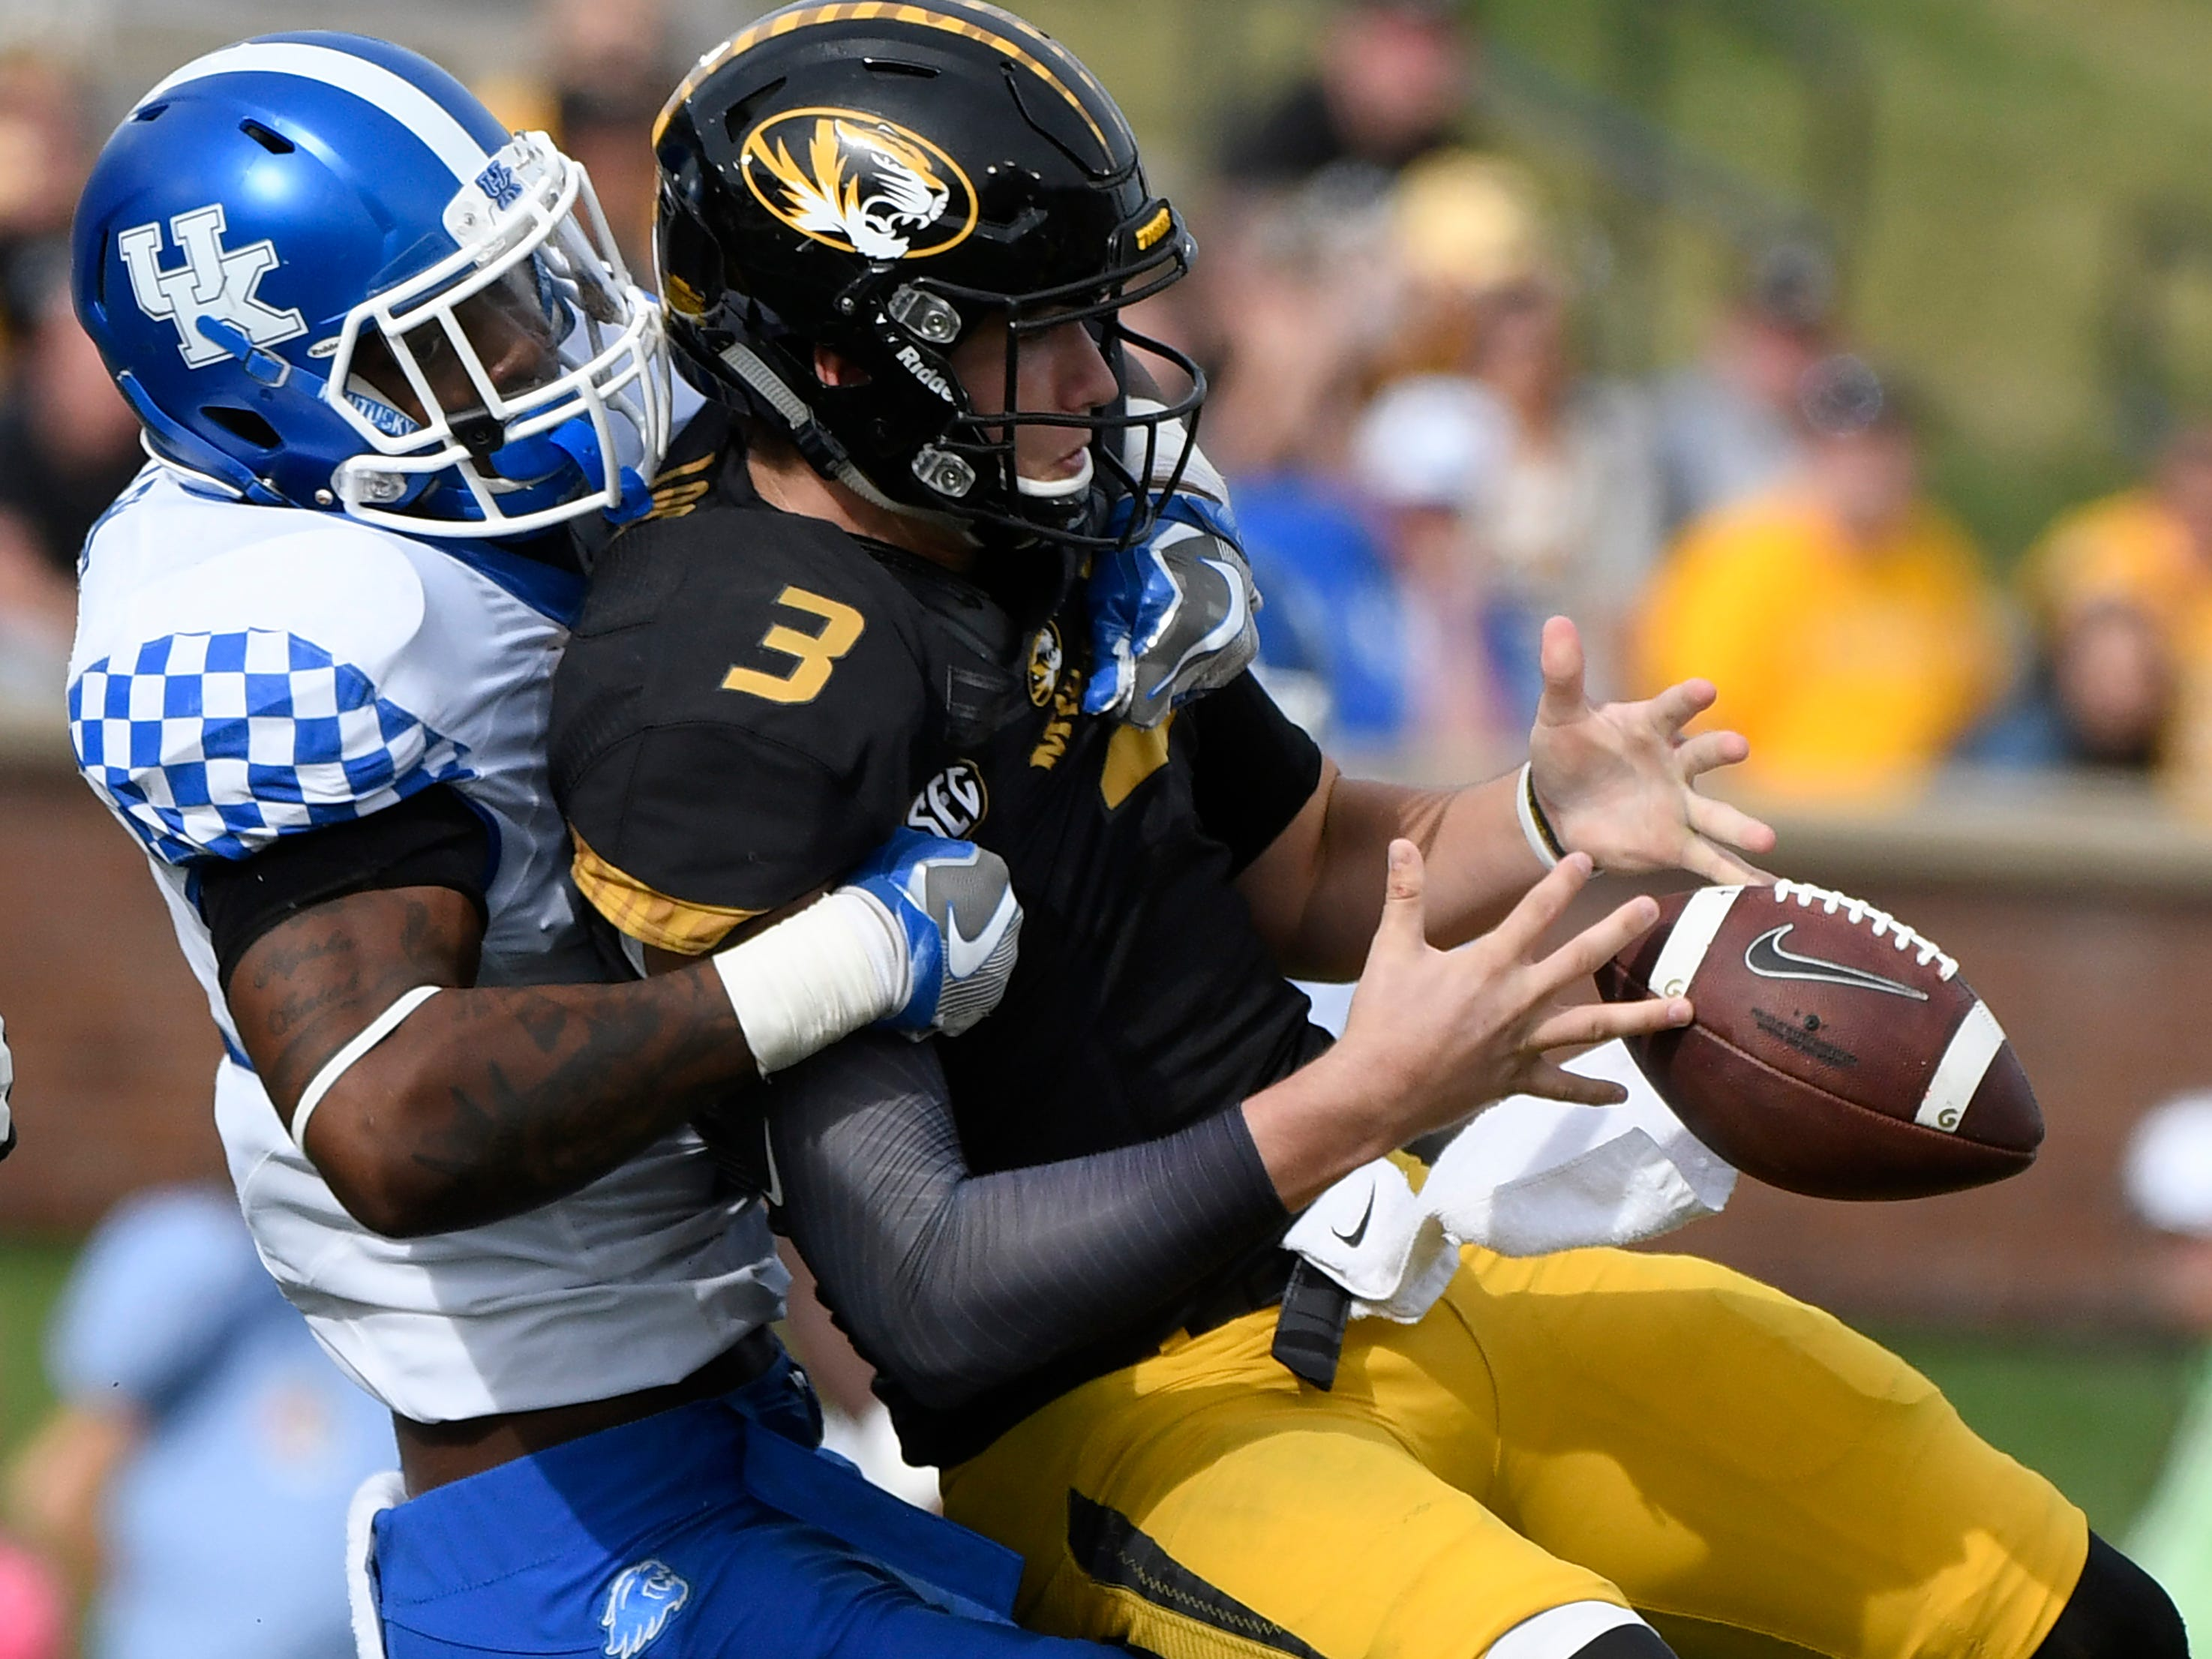 4. Oakland Raiders — Josh Allen, DE/LB, Kentucky: The Raiders traded away Khalil Mack, then went on to finish with a league-low 13 sacks. How bad was that? The Patriots and Giants were the next worst teams with 30. Allen developed into one of college football's best pass-rushers last season and should help close the gap.